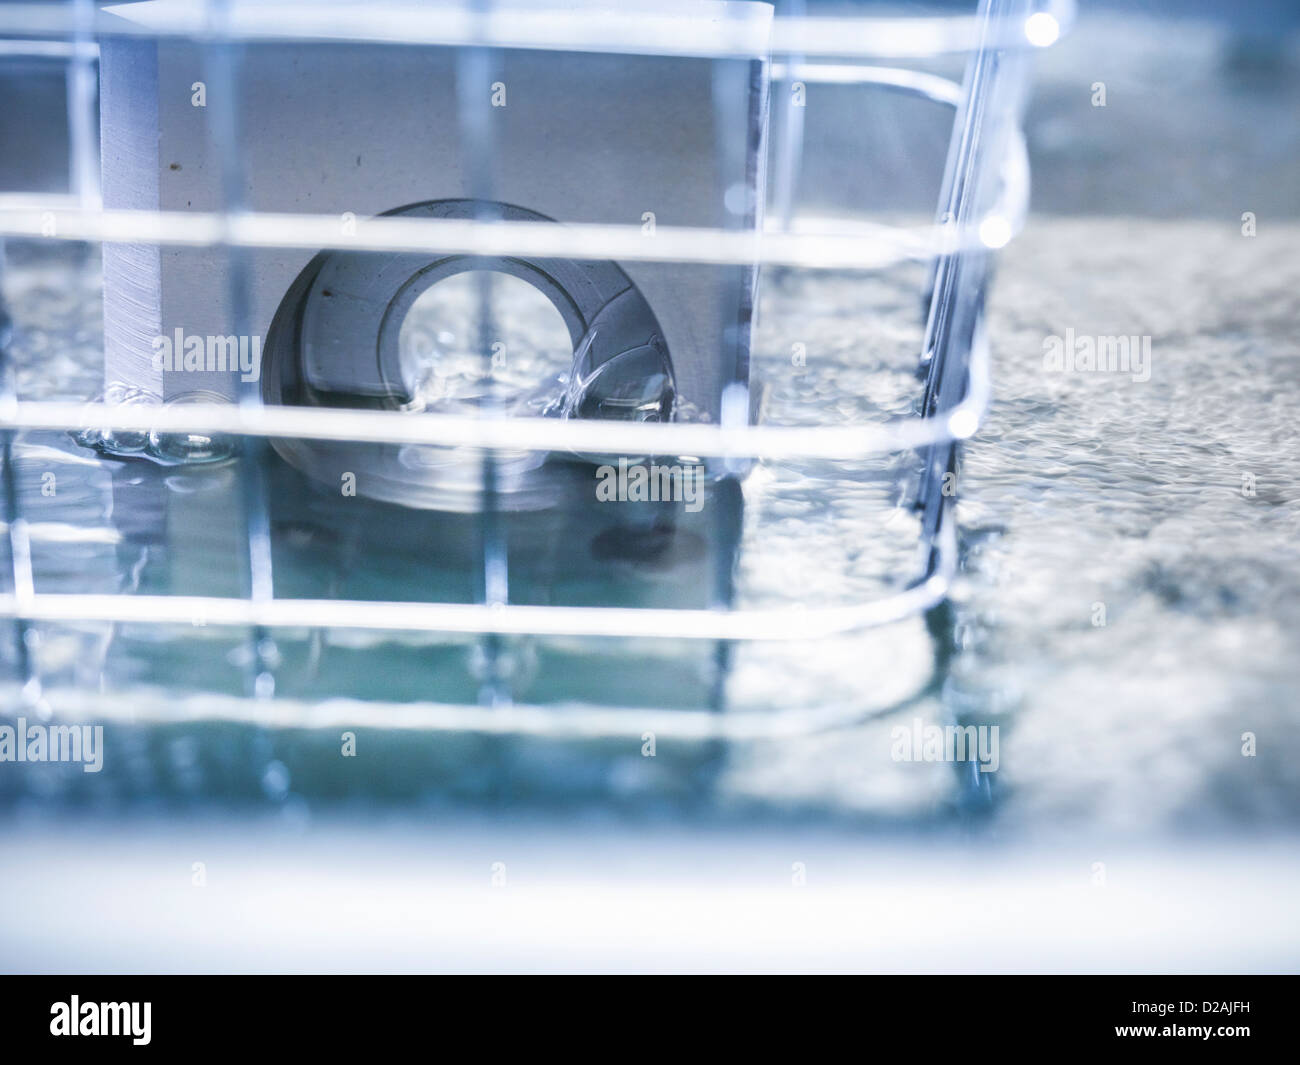 Products being cleaned with ultrasonics - Stock Image